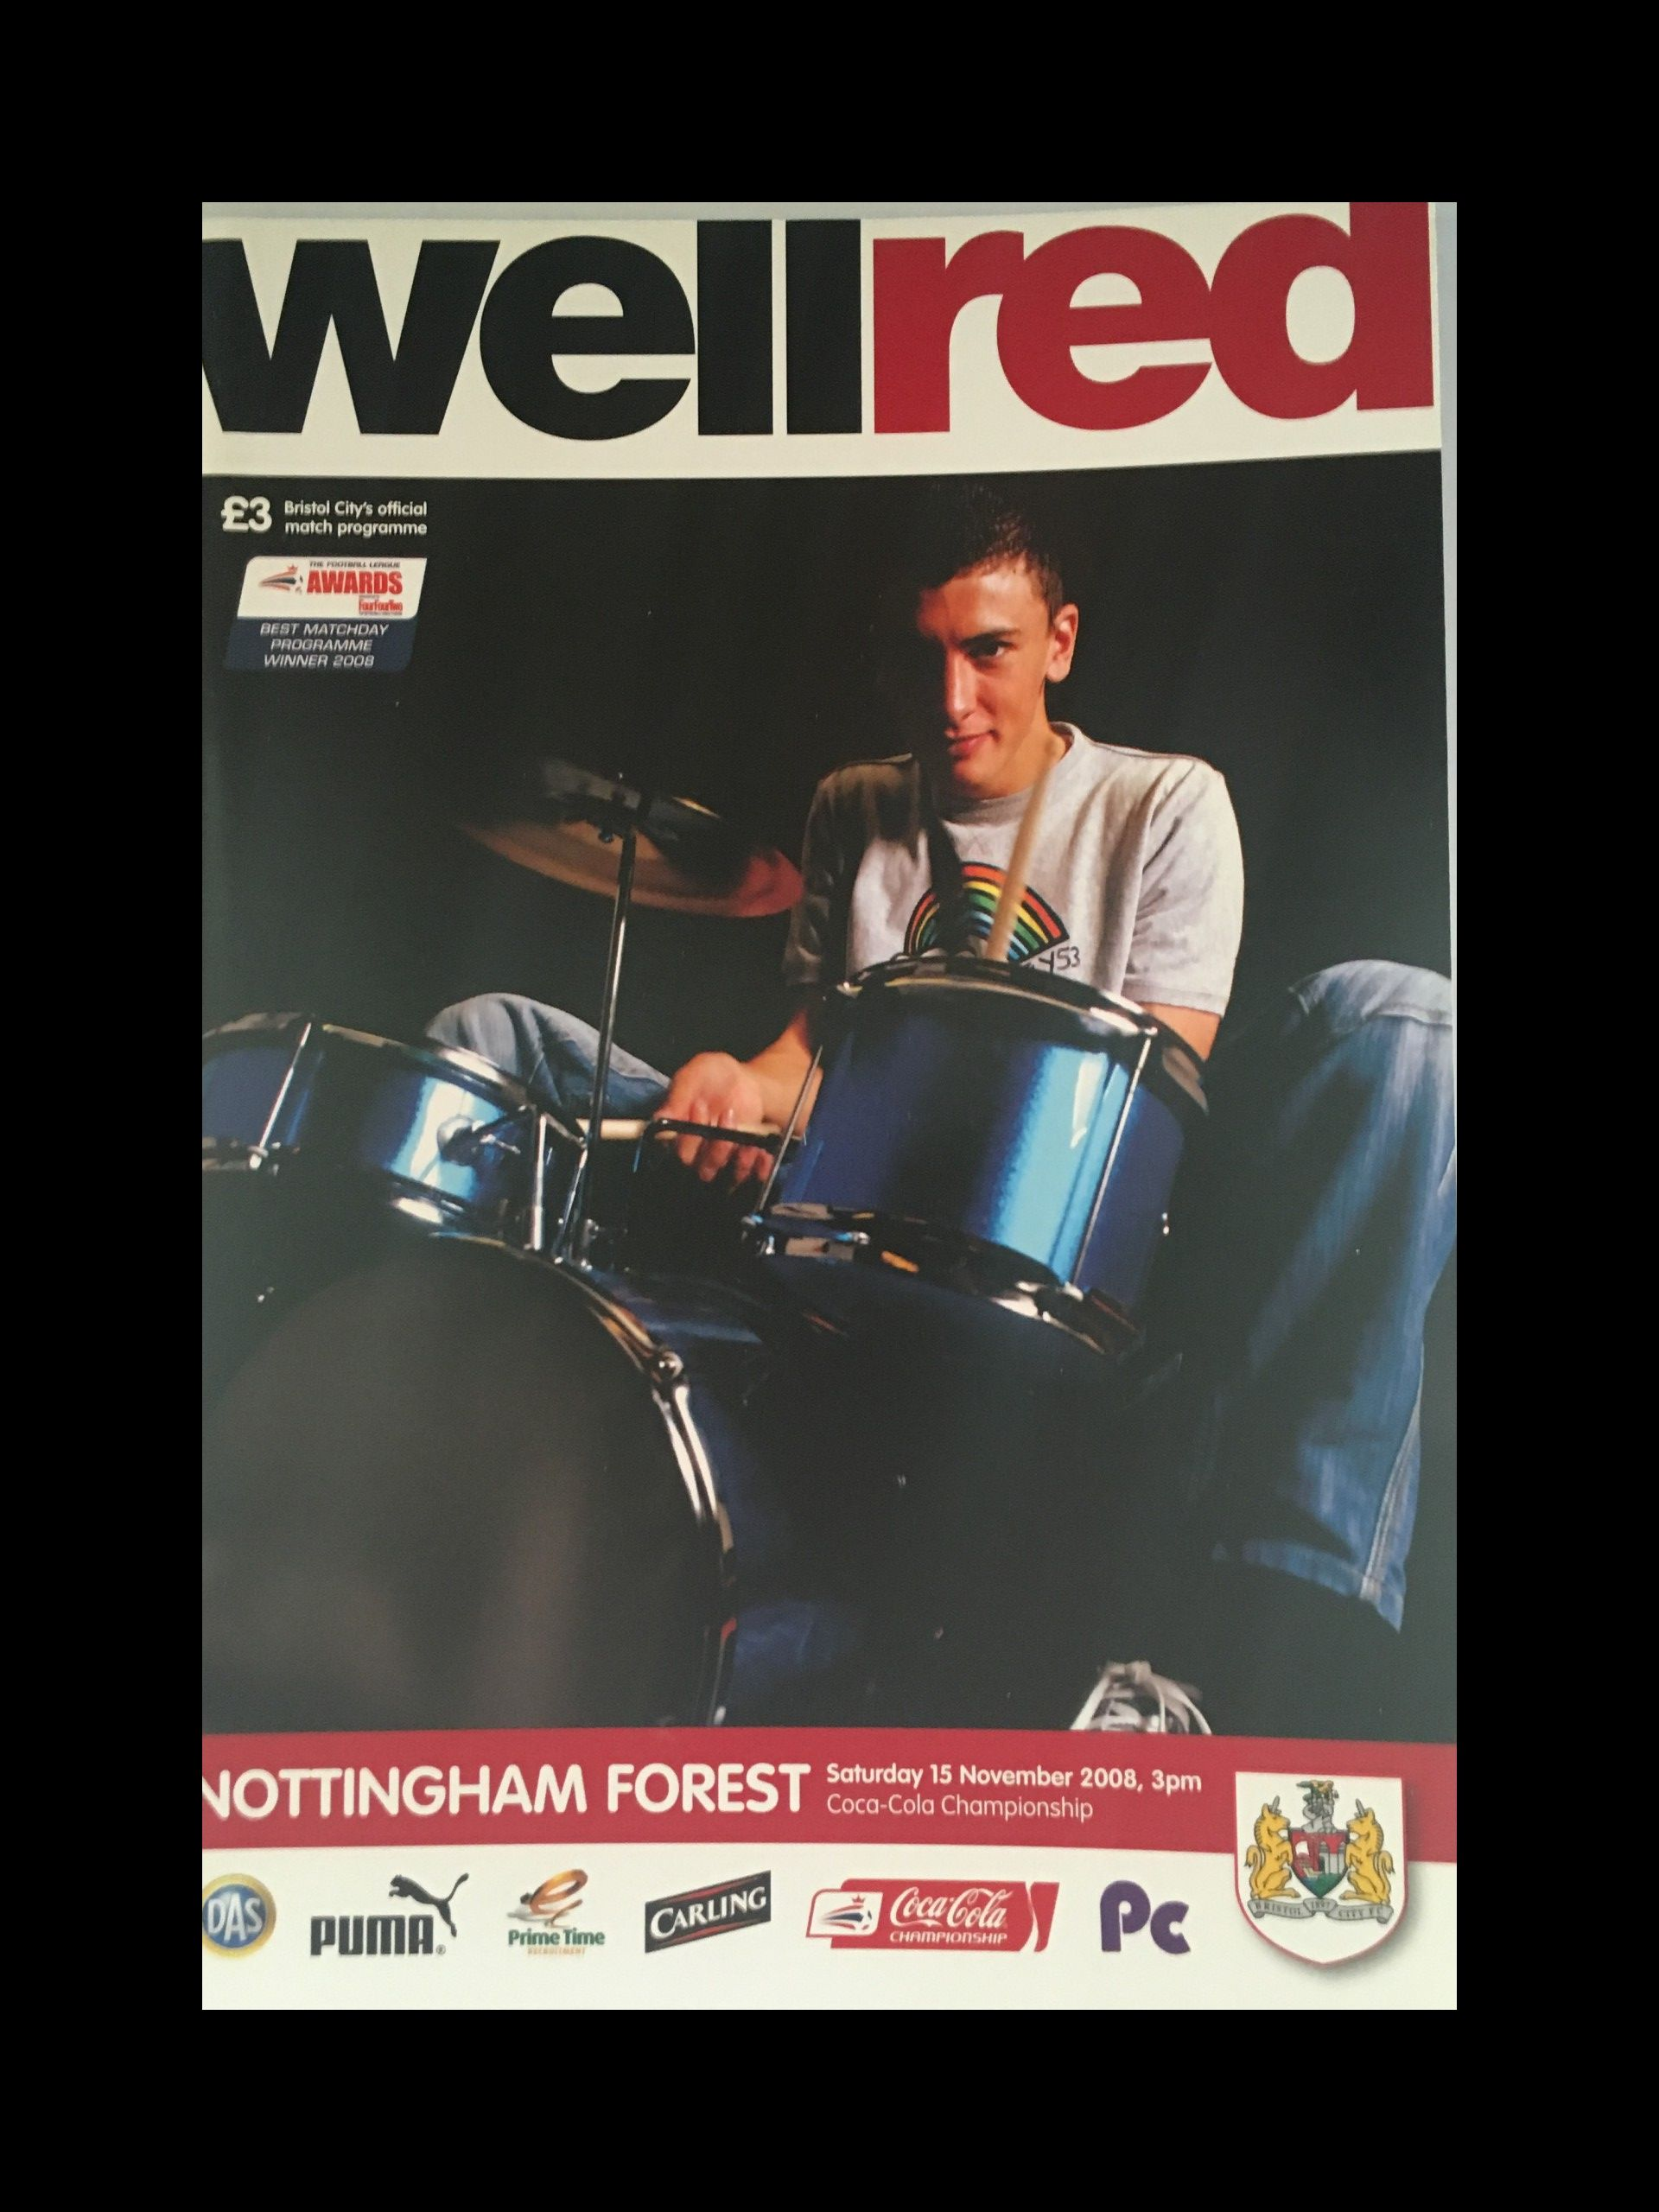 Bristol City v Nottingham Forest 15-11-2008 Programme